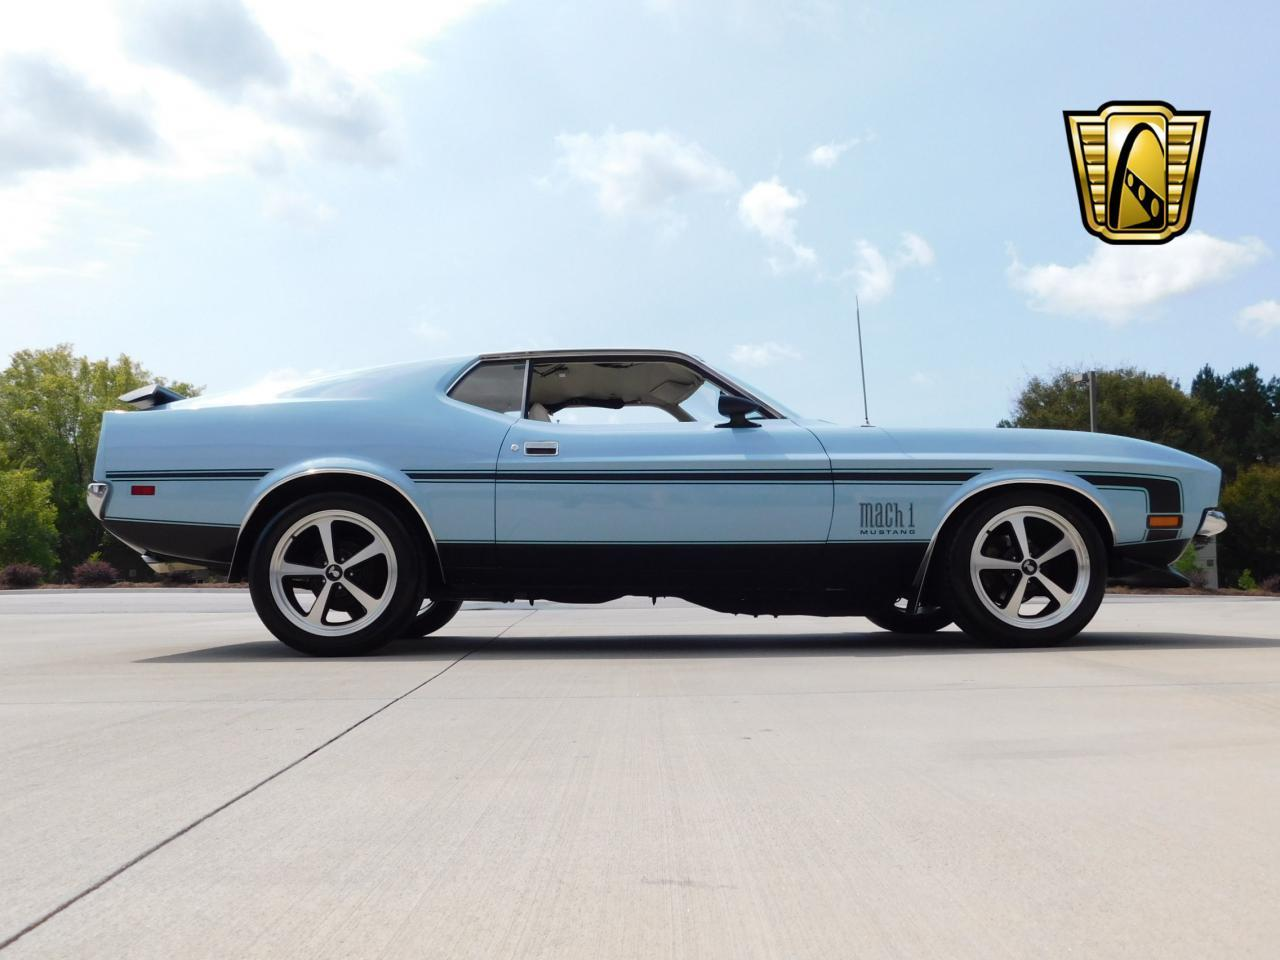 Large Picture of Classic 1971 Ford Mustang located in Georgia - $33,995.00 Offered by Gateway Classic Cars - Atlanta - LTQ6